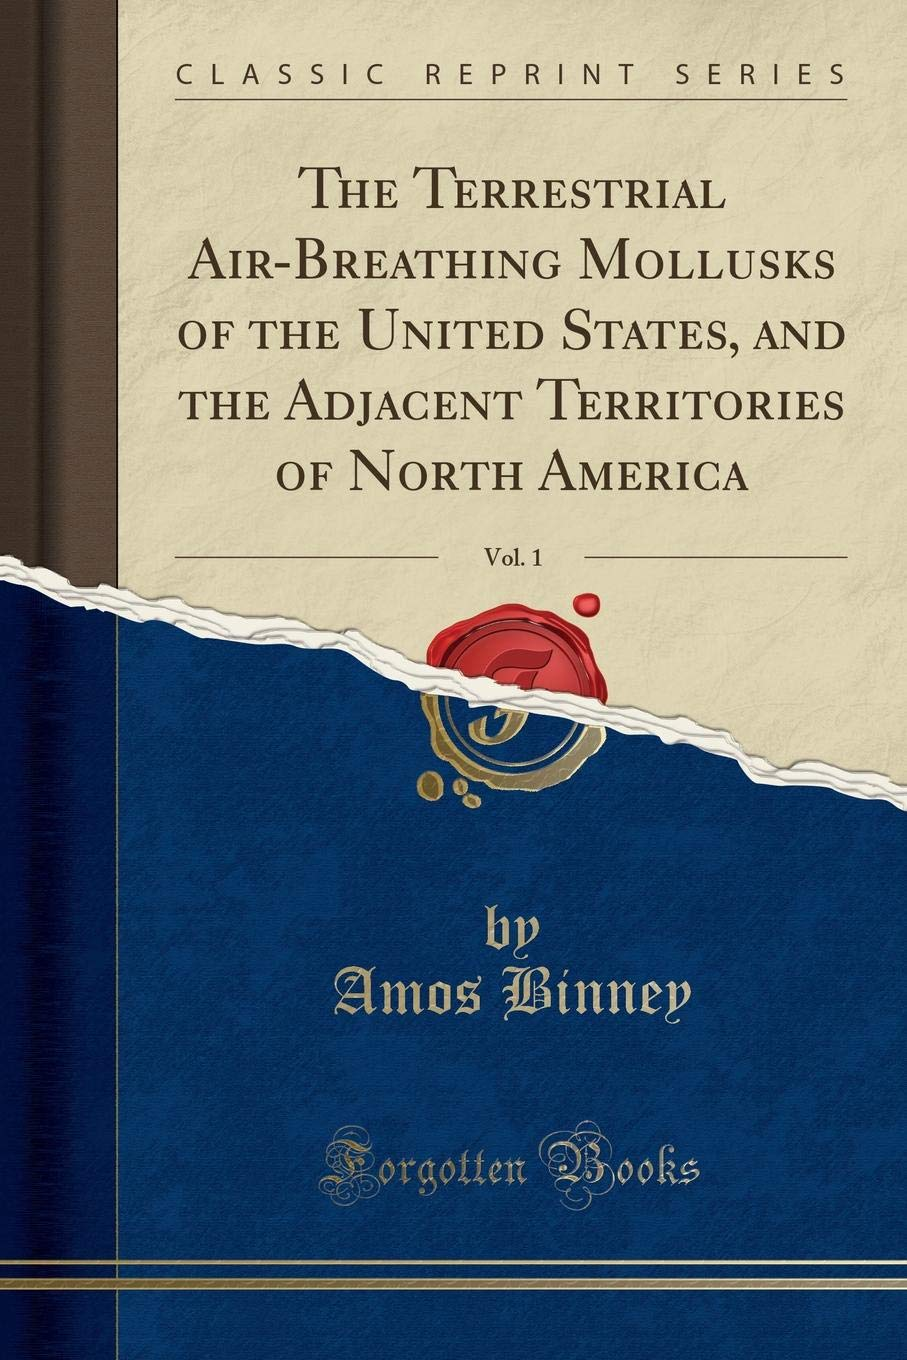 Read Online The Terrestrial Air-Breathing Mollusks of the United States, and the Adjacent Territories of North America, Vol. 1 (Classic Reprint) ebook